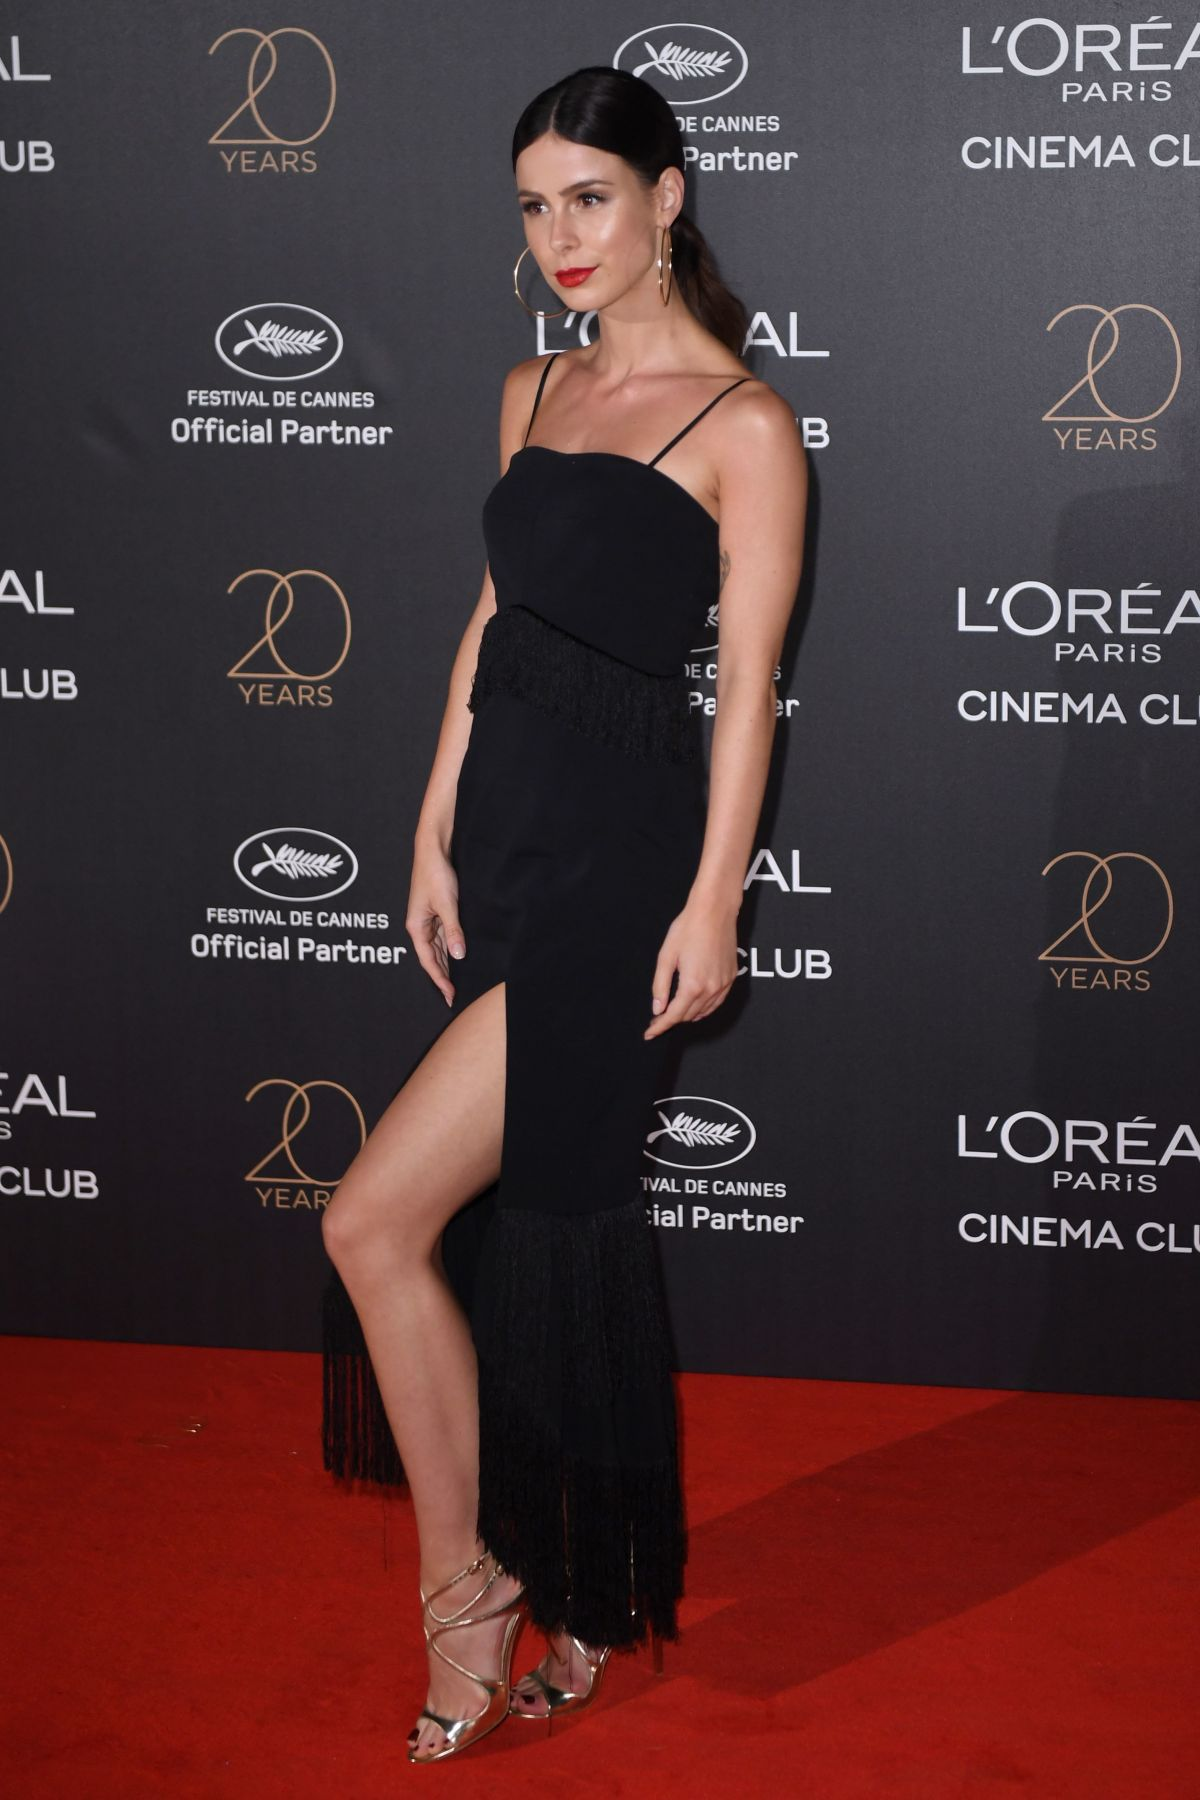 LENA MEYER-LANDRUT at L'Oreal 20th Anniversary Party at Cannes Film Festival 05/24/2017